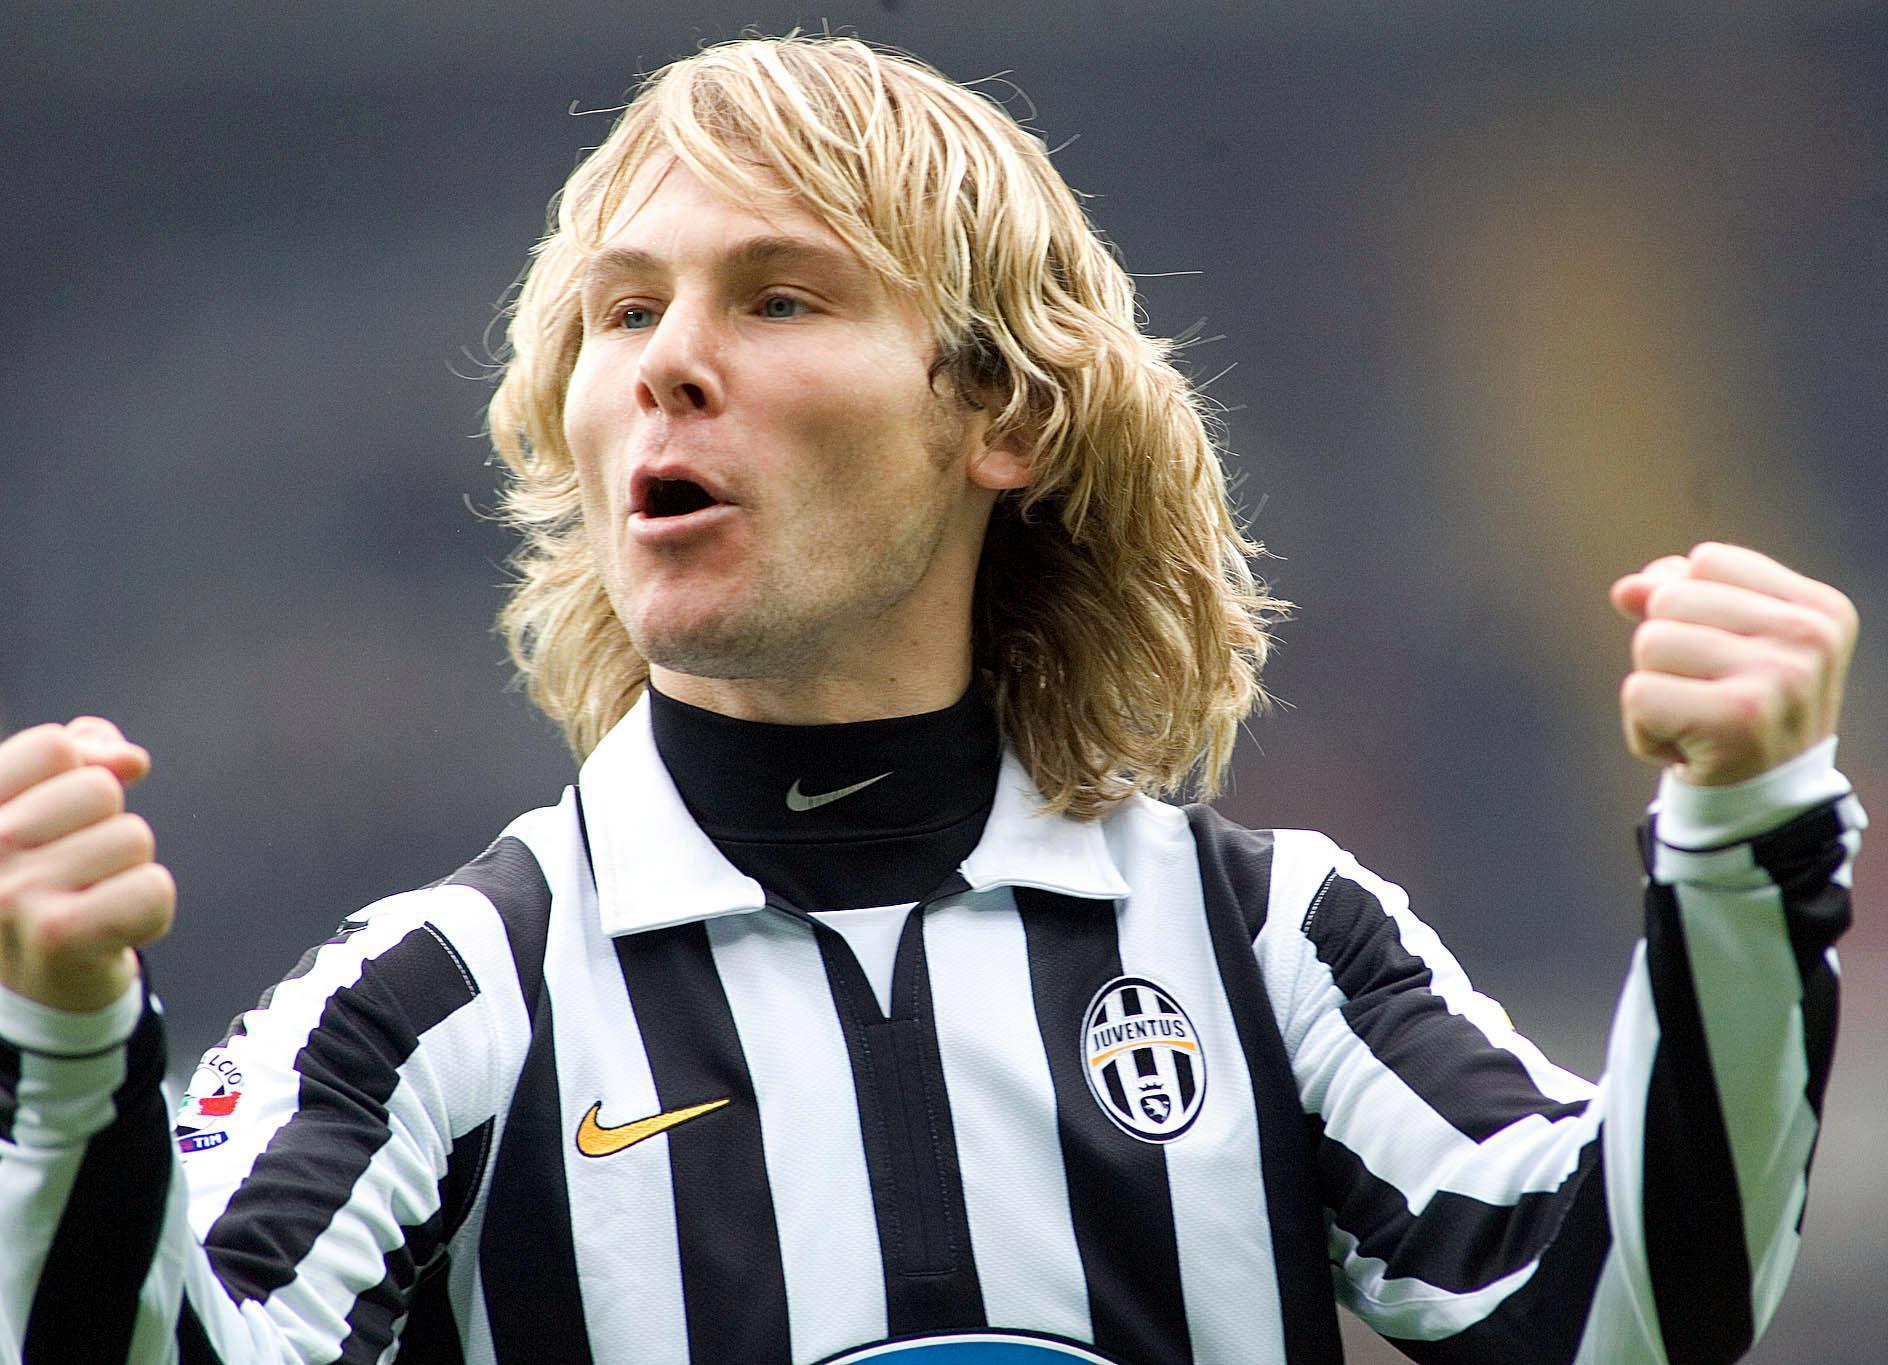 Pavel Nedved was among Juventus heroes who stayed despite relegation